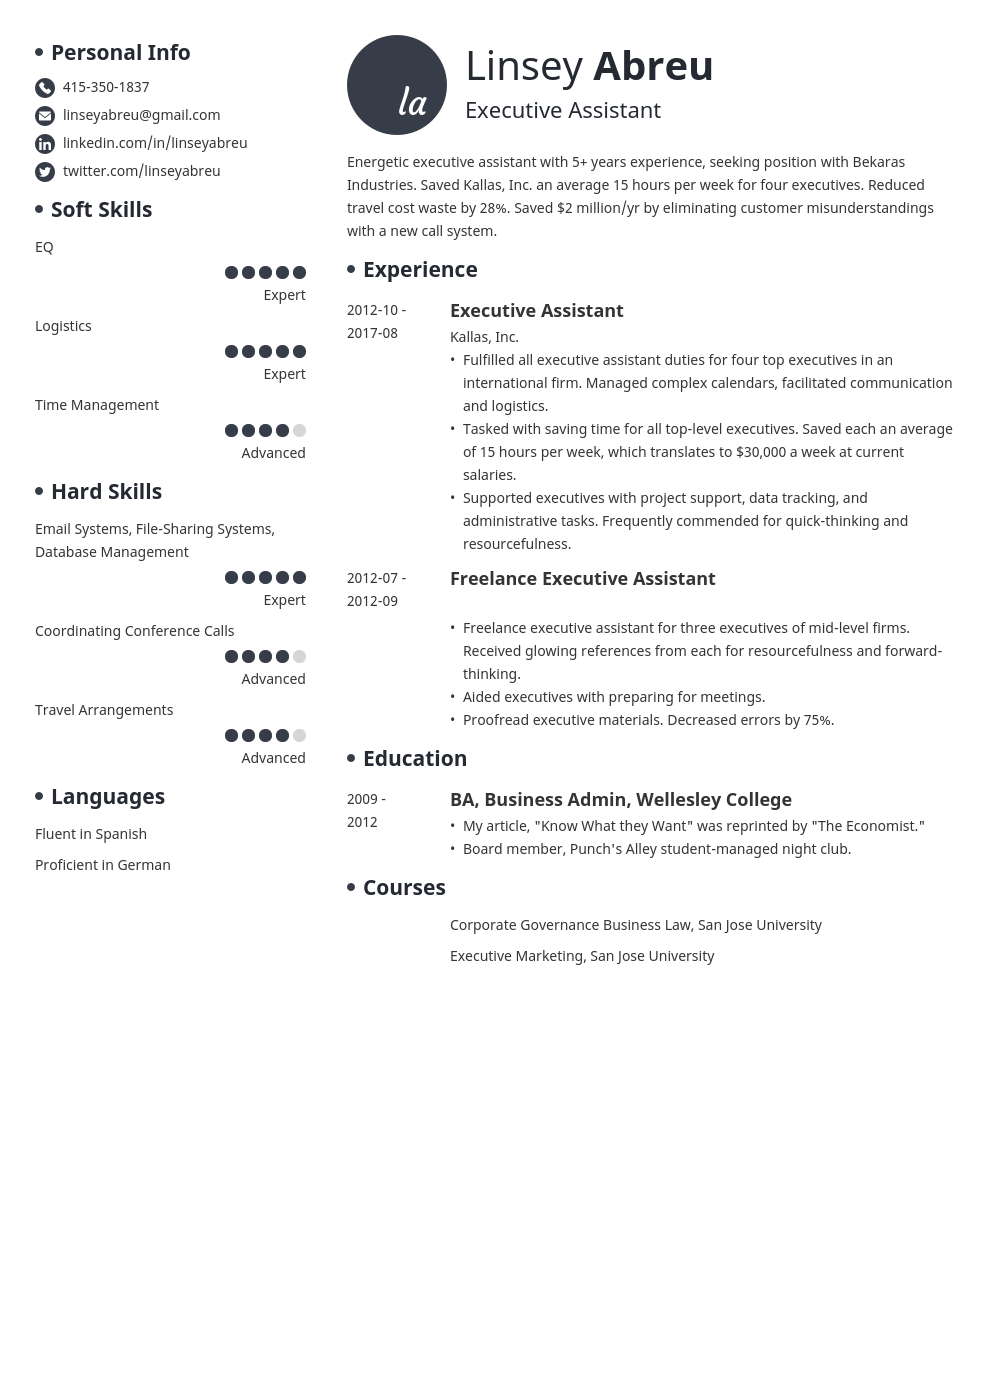 Executive Assistant Resume Sample Skills Objective